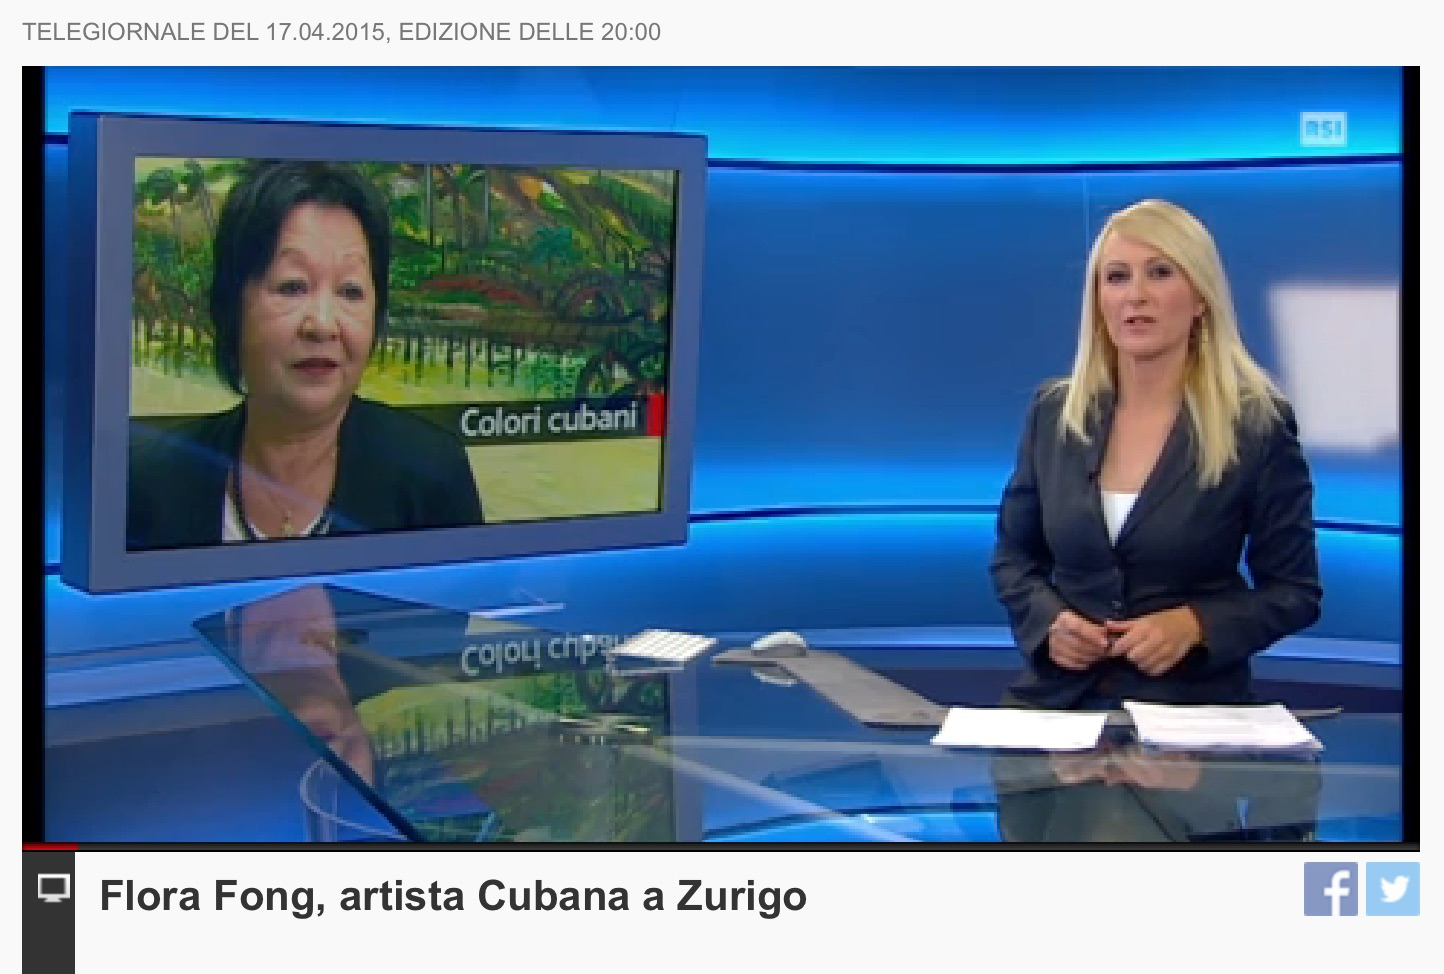 Flora Fong in Main News of television of Ticino